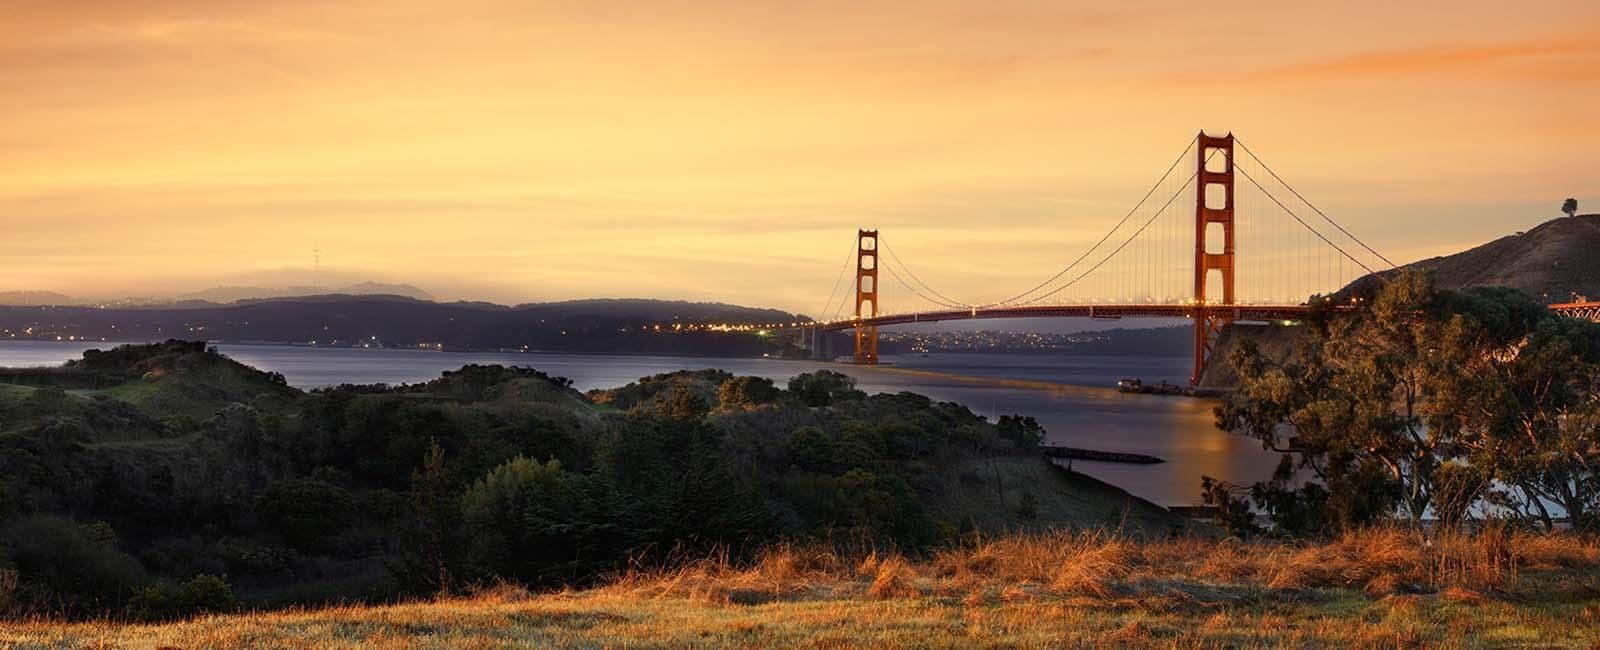 The Golden Gate Bridge seen from Fort Baker.